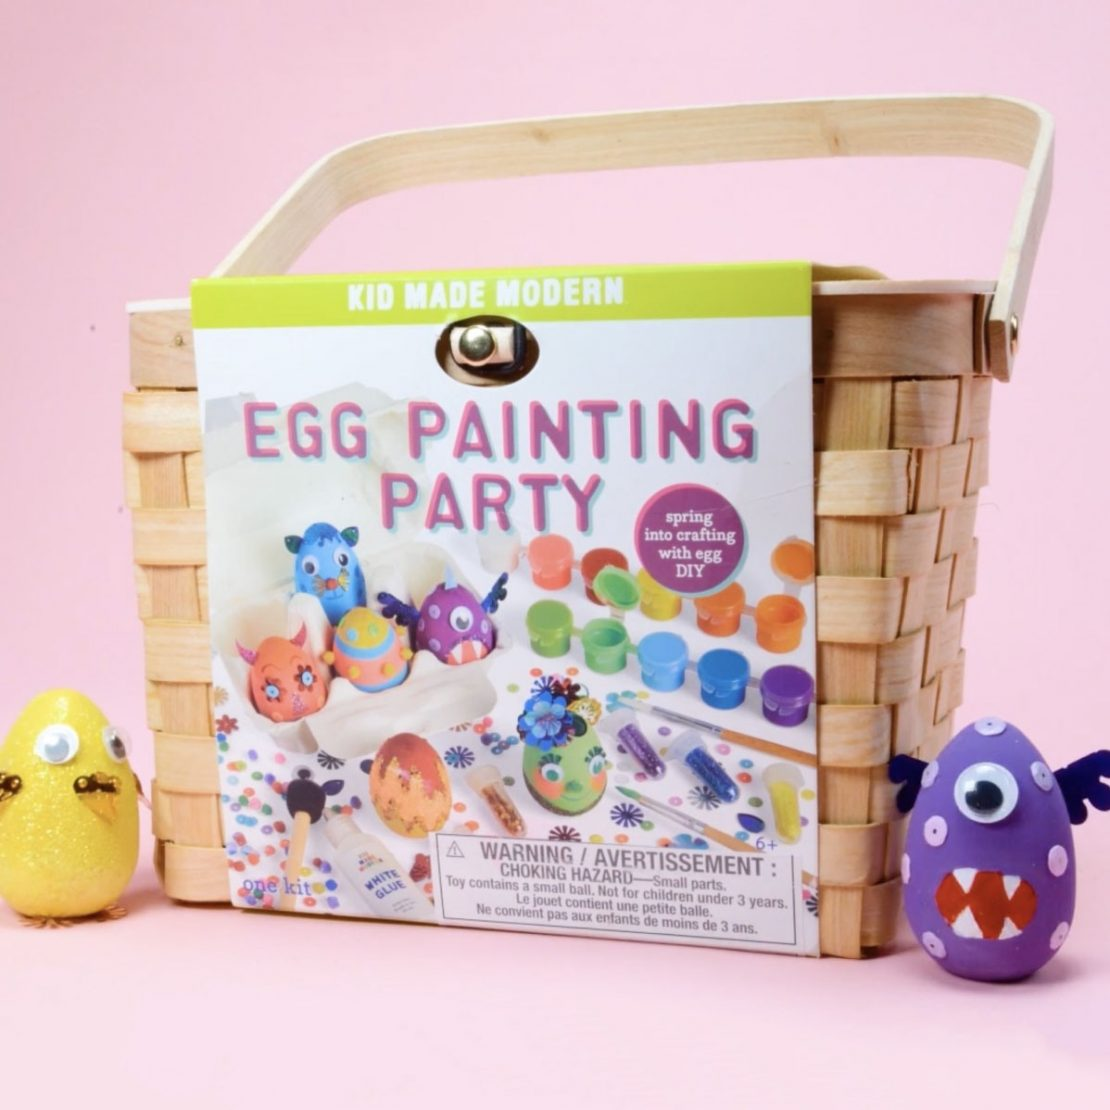 Egg Painting Party from Kid Made Modern